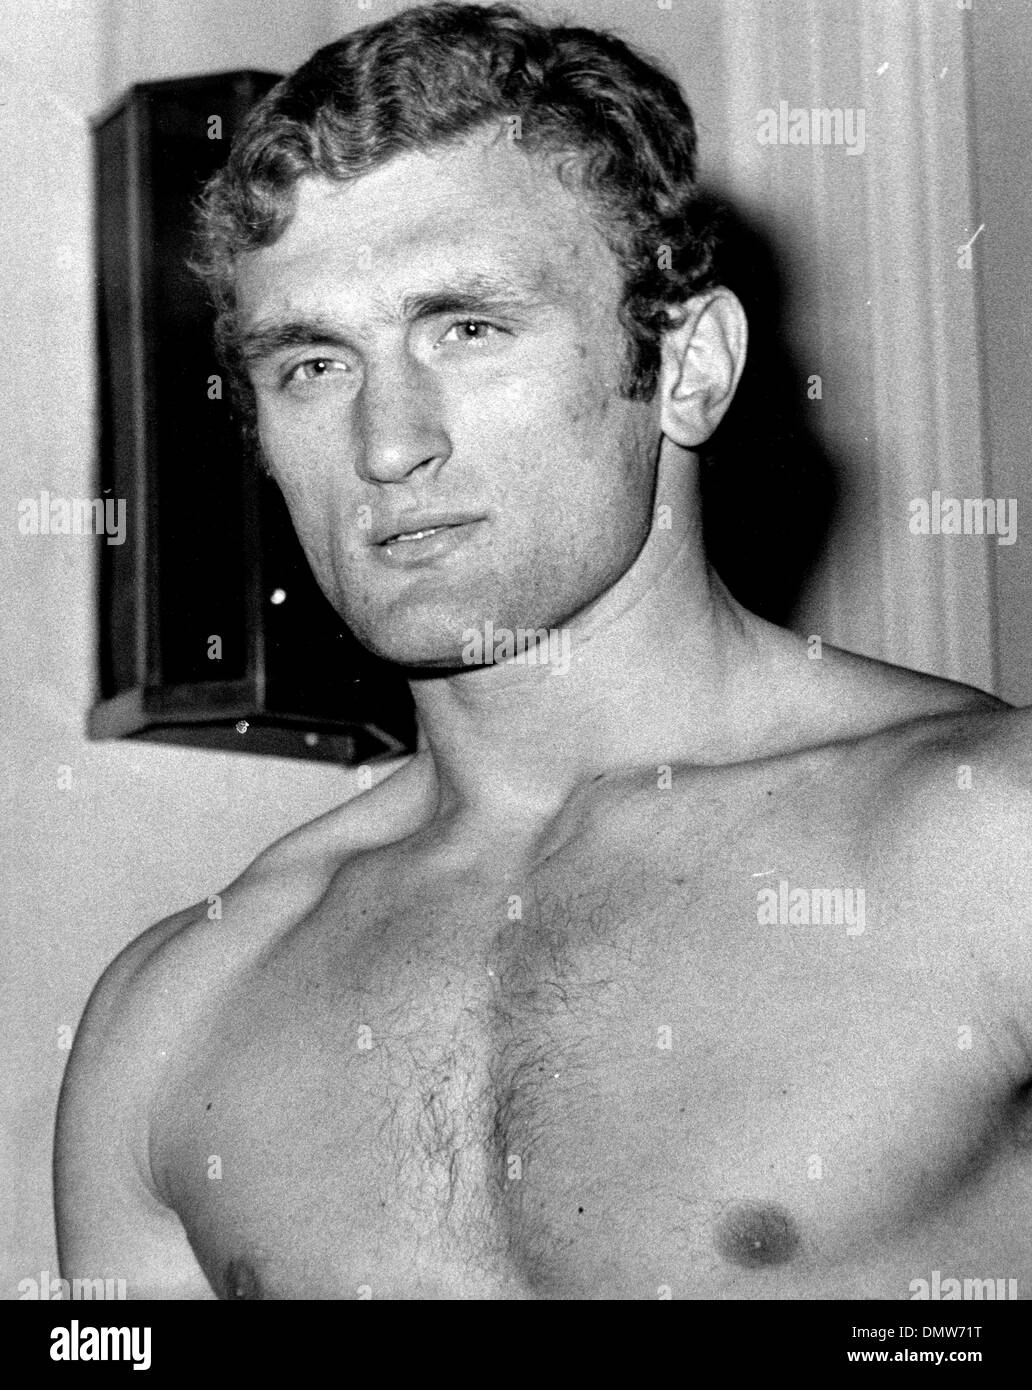 Dec 09, 1973; London, England, UK; British heavyweight JOE BUGNER at weigh-in for his contest agains American heavyweight Charlie Polite at the Albert Hall in London. (Credit Image: © KEYSTONE Pictures USA) - Stock Image